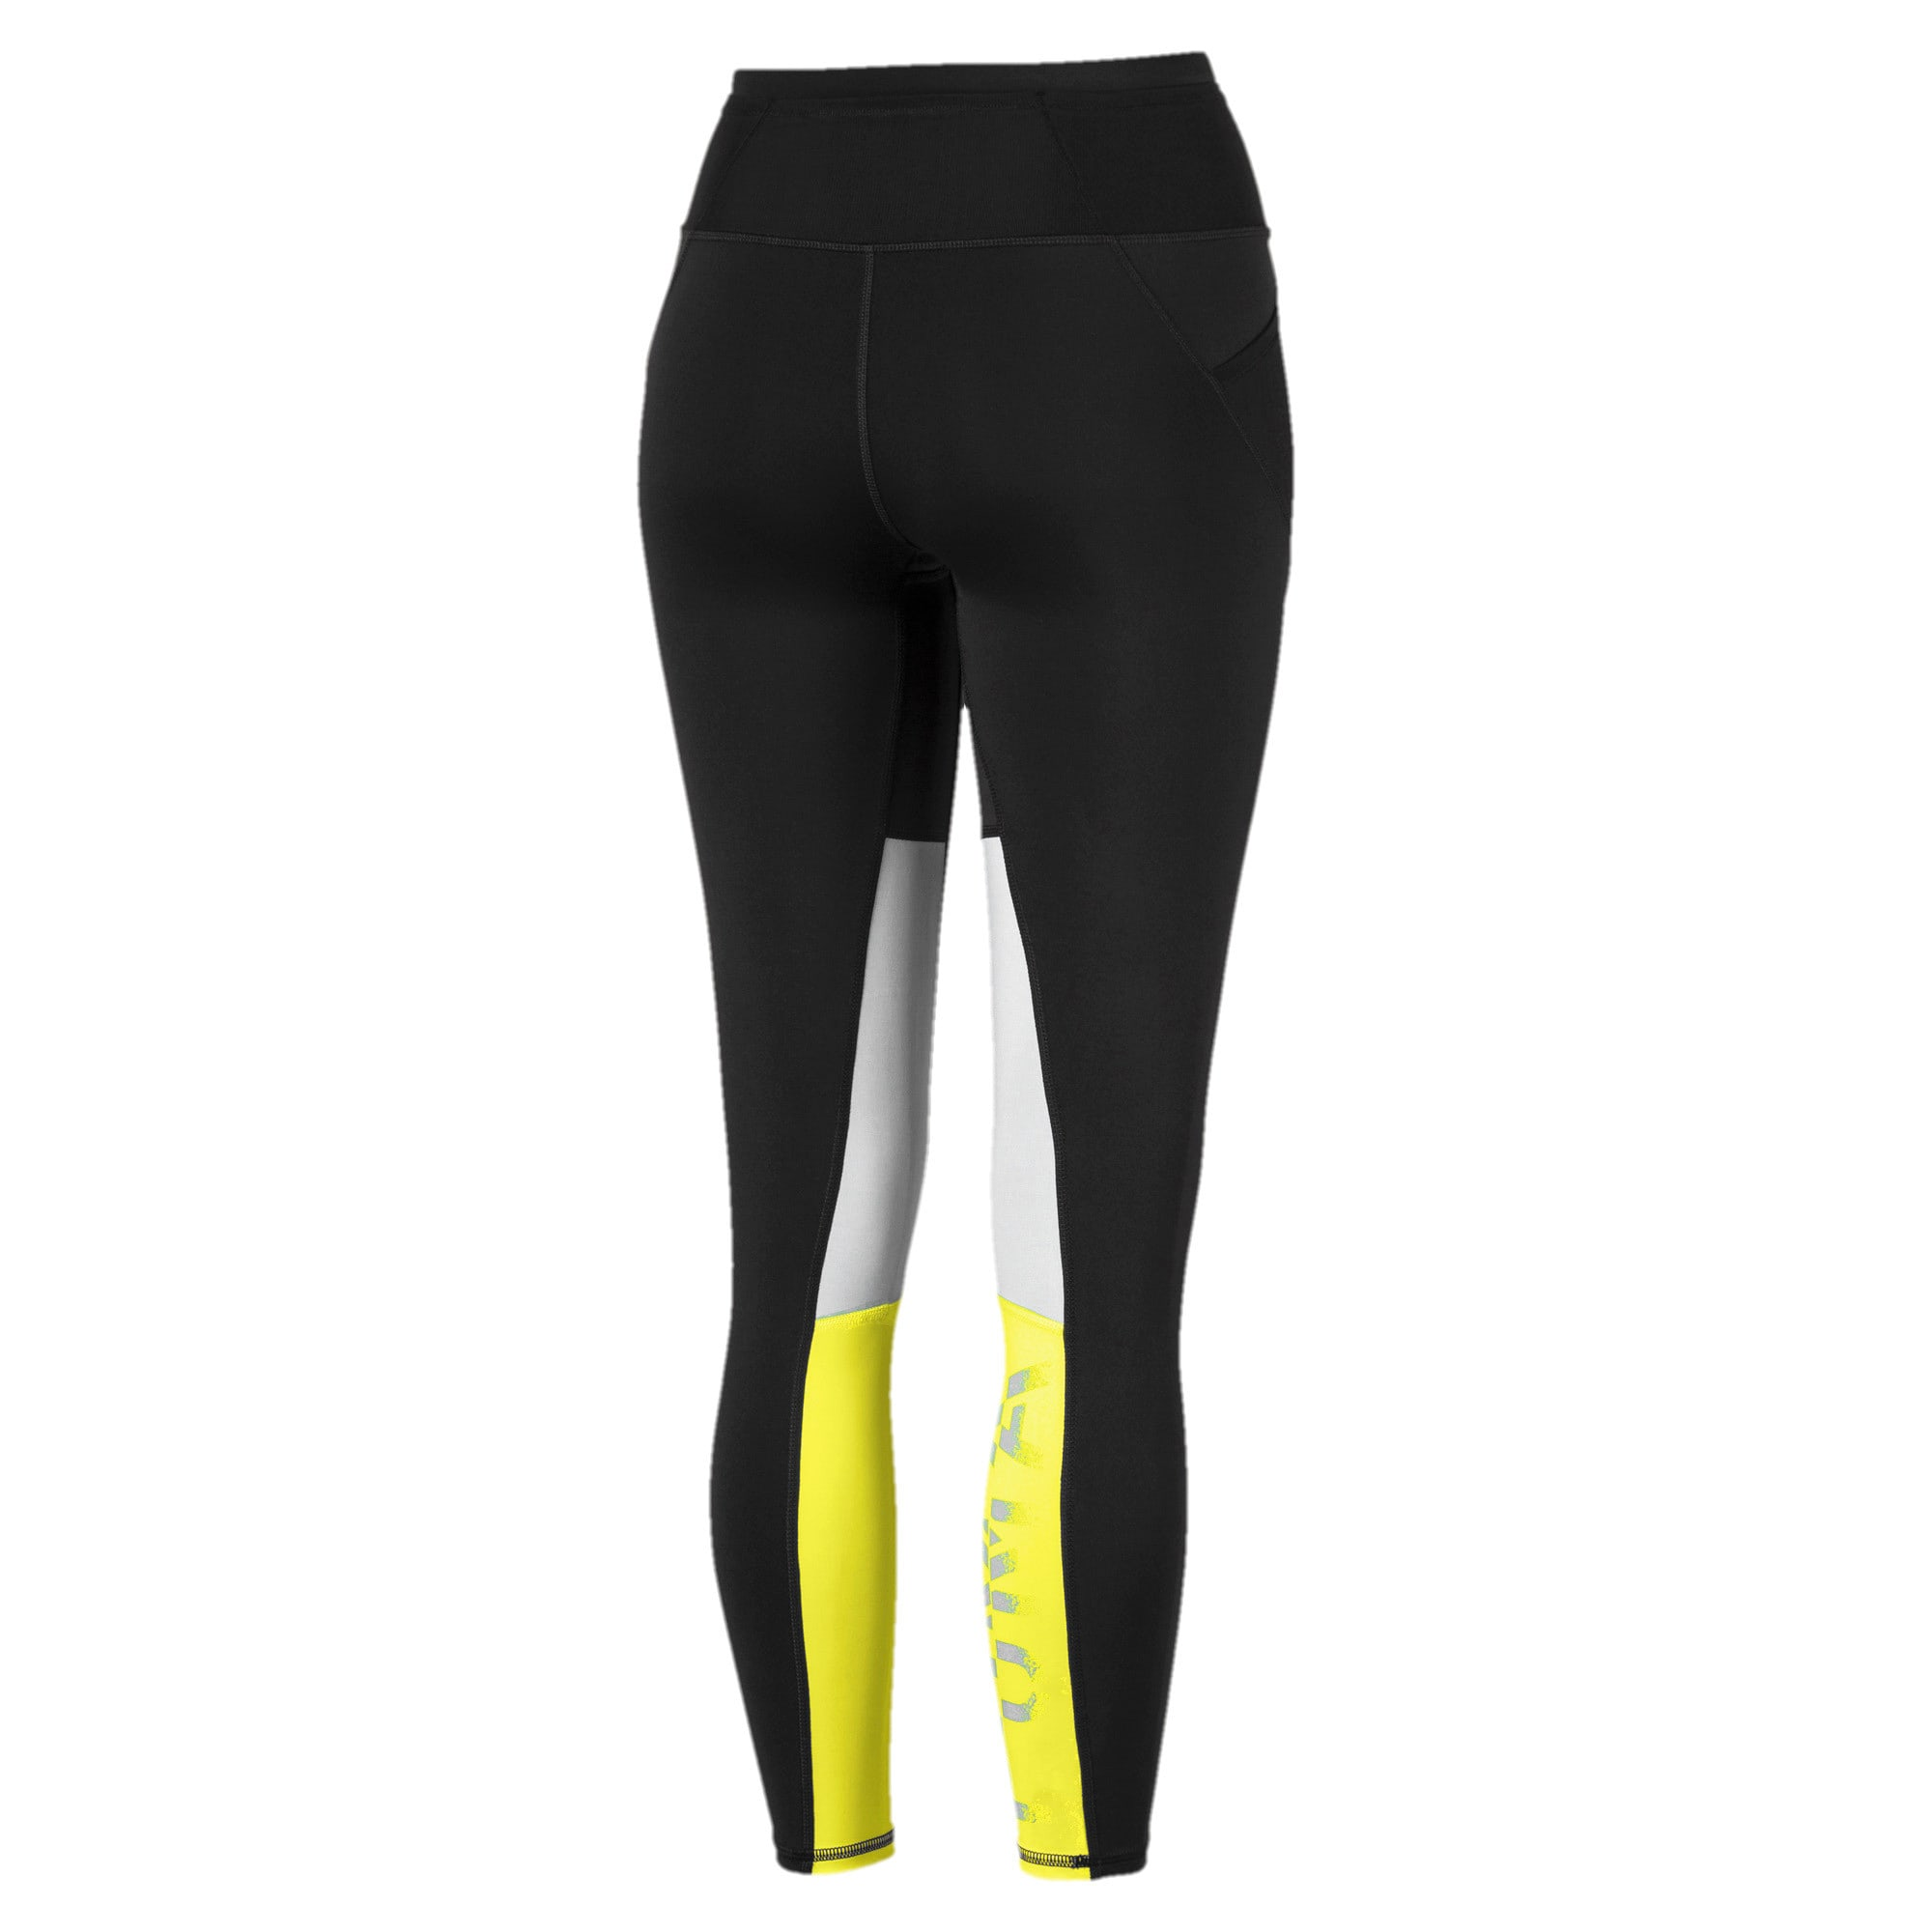 Thumbnail 5 of Feel It Women's 7/8 Leggings, Puma Black-Yellow Alert, medium